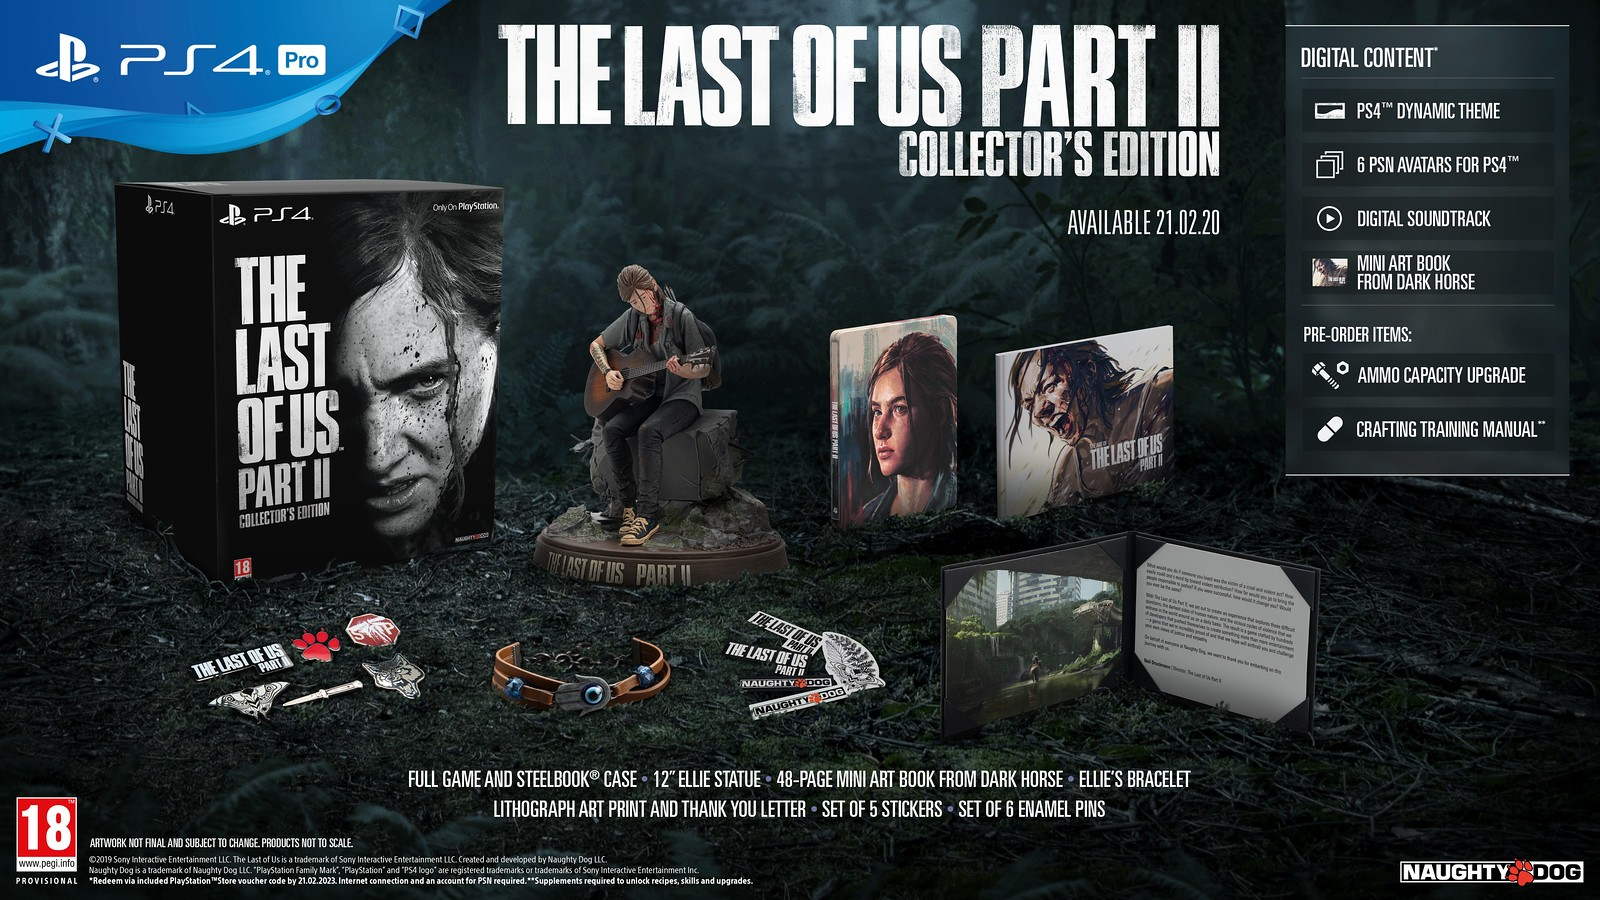 Ps4 Exclusive Games 2020.The Last Of Us Part 2 Coming To Ps4 On February 21 2020